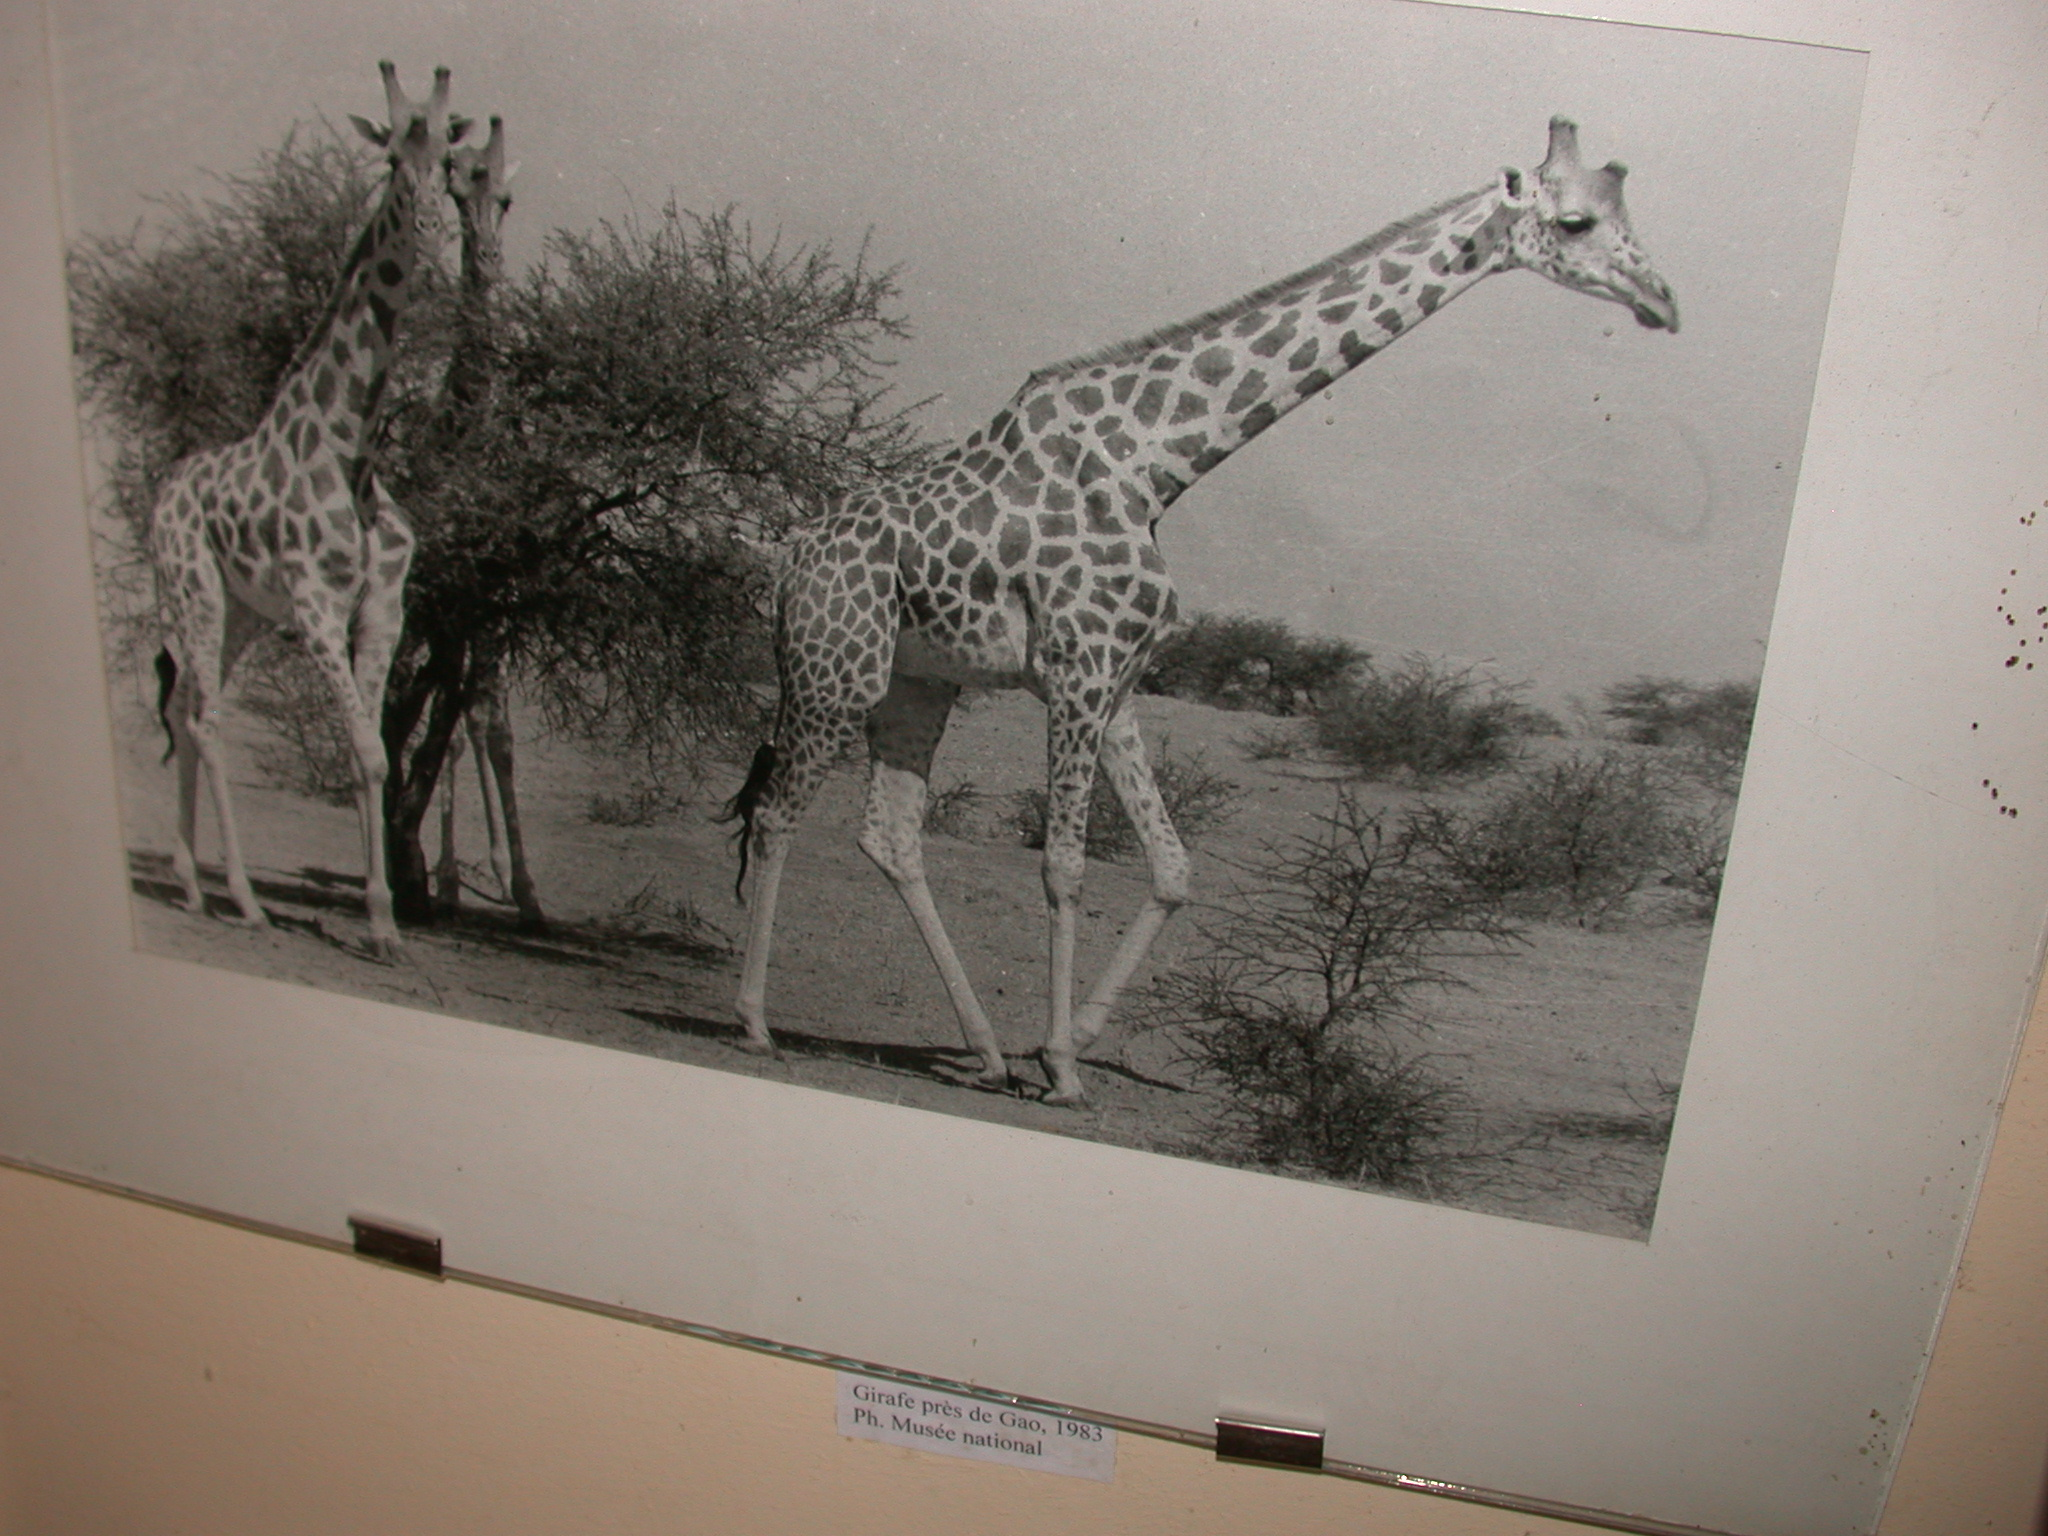 Photo of Giraffes Near Gao in 1983, Timbuktu Ethnological Museum, Timbuktu, Mali